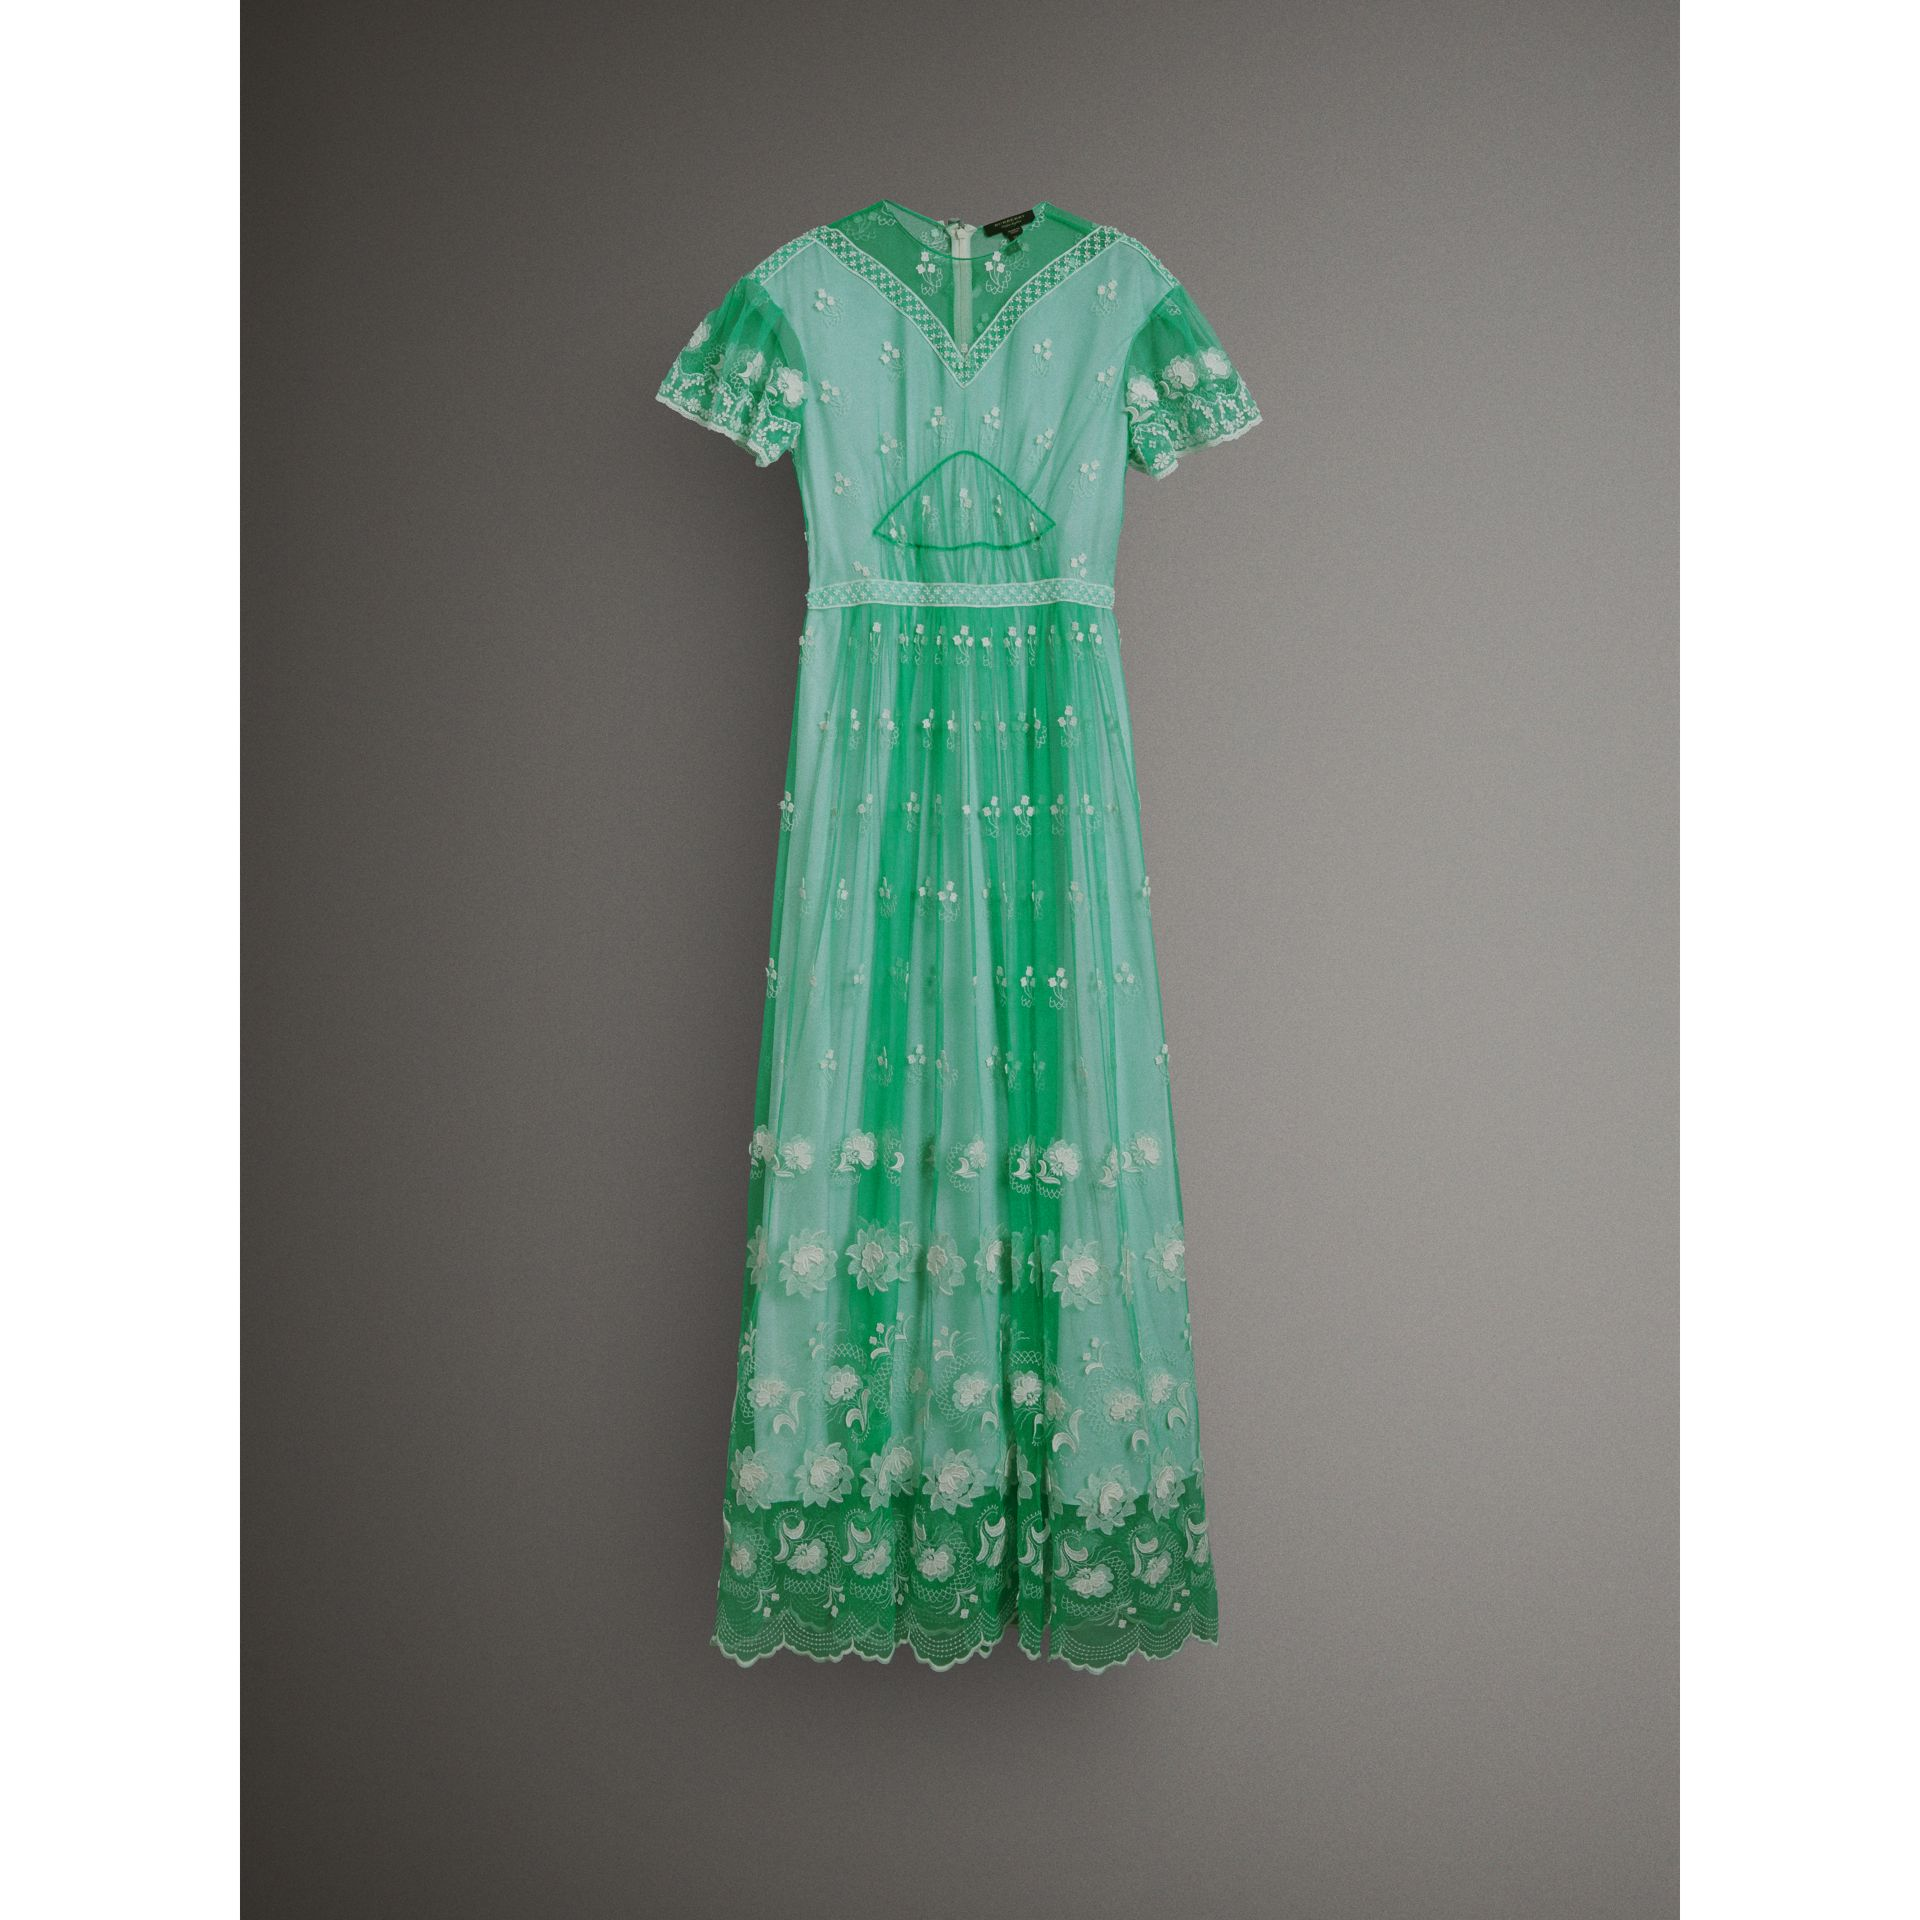 Embroidered Tulle Gathered Dress in Aqua Green/white - Women | Burberry United States - gallery image 3